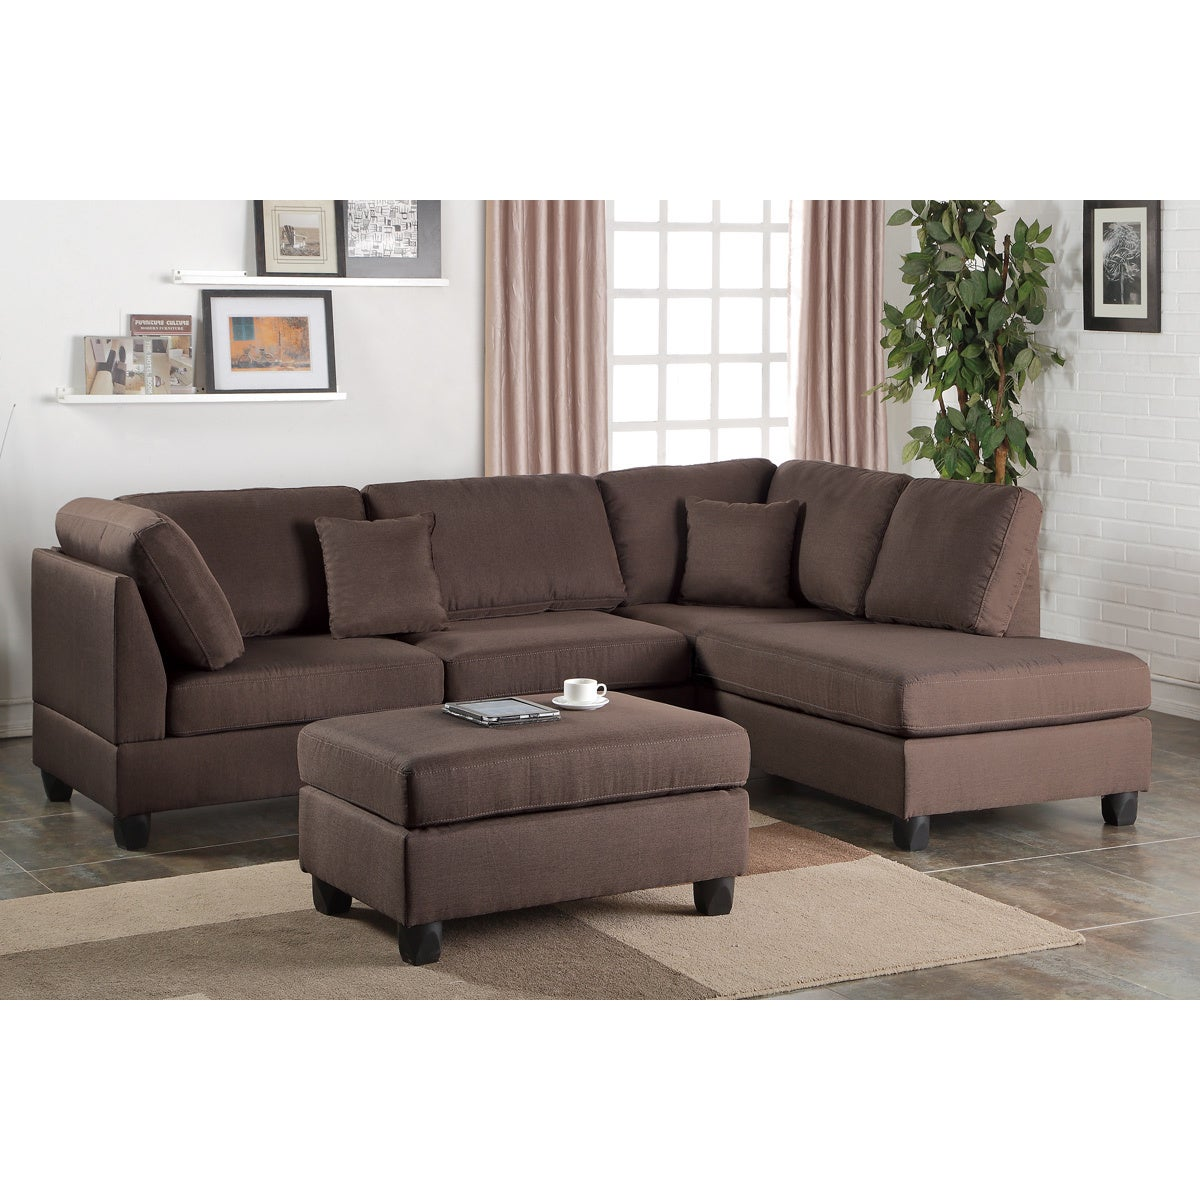 reputable site 57167 12845 Bobkona Dervon Linen-Like Left or Right hand Chaise Sectional Set with  Ottoman